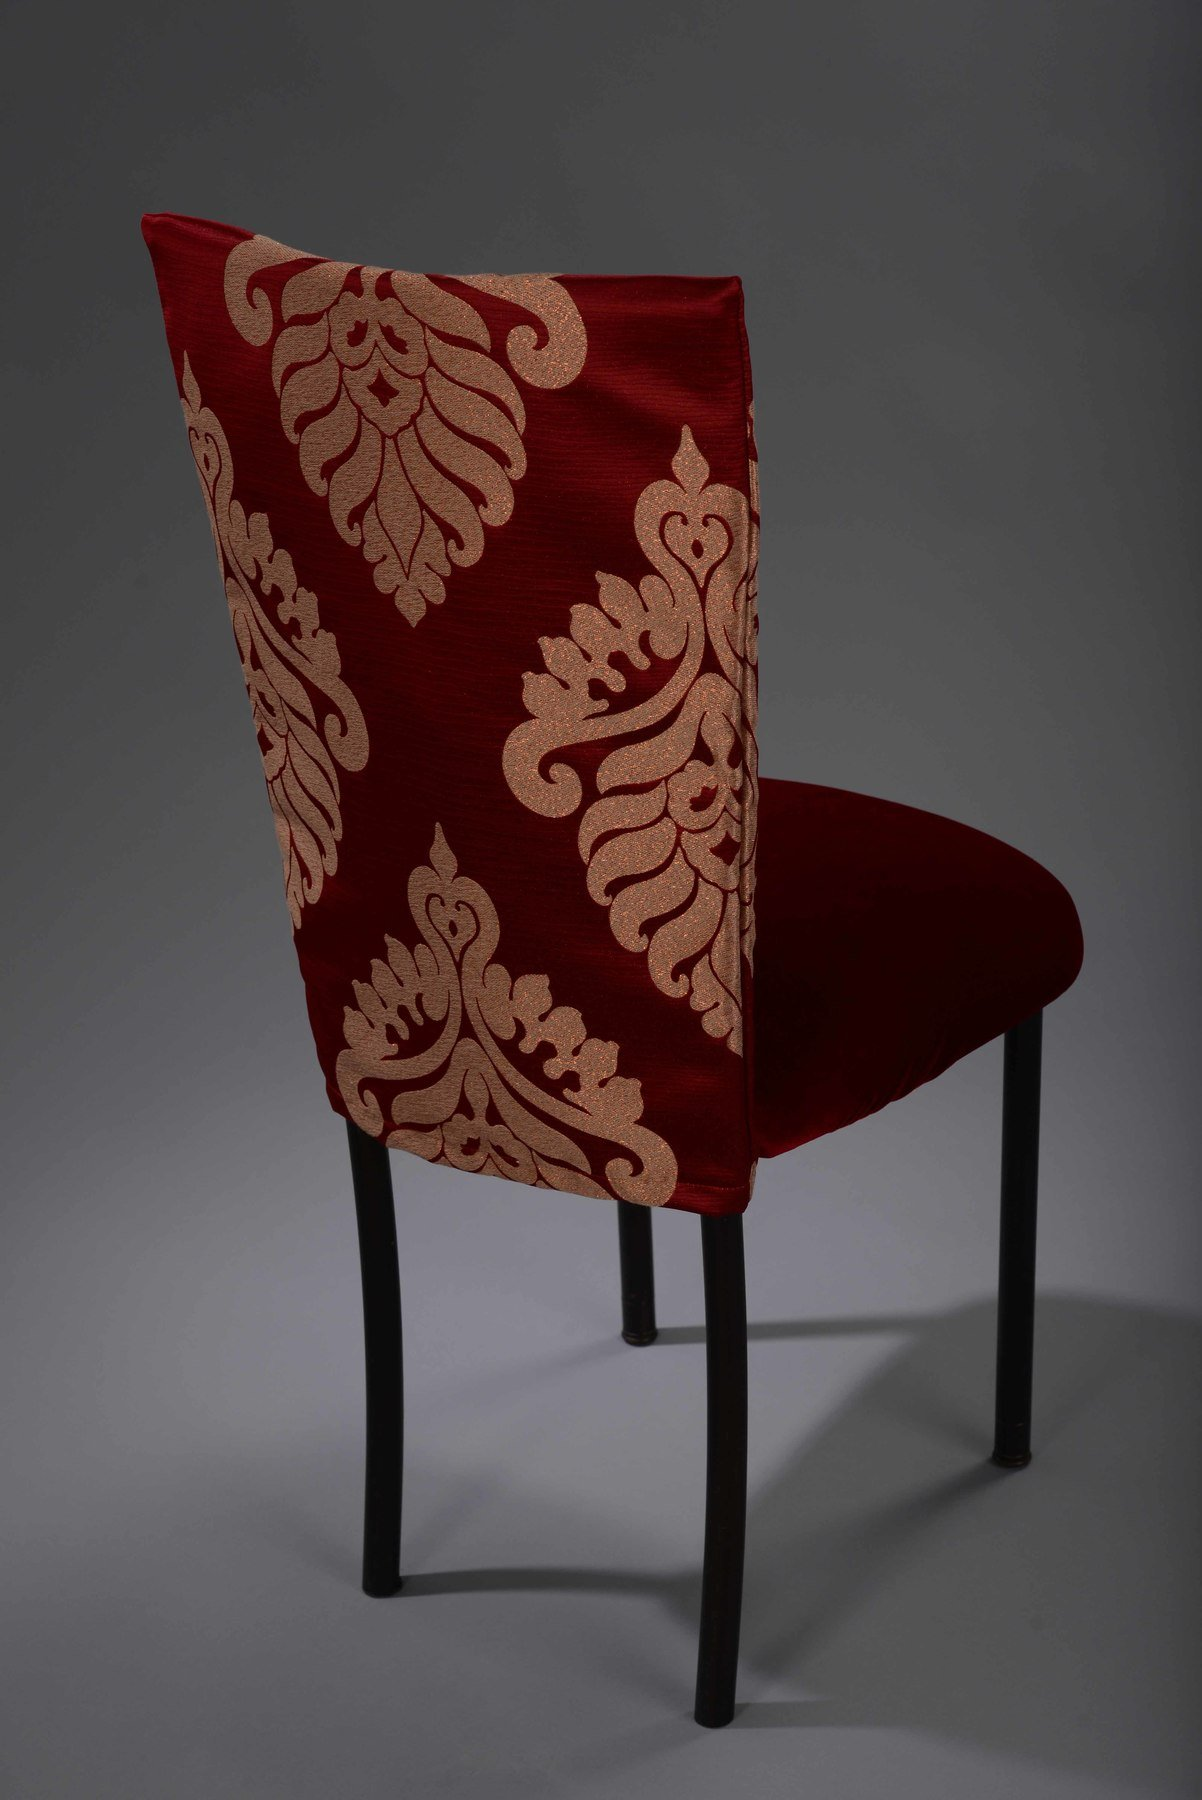 chair cover rental cost beach chairs nice france red metallic medallion chameleon nüage designs